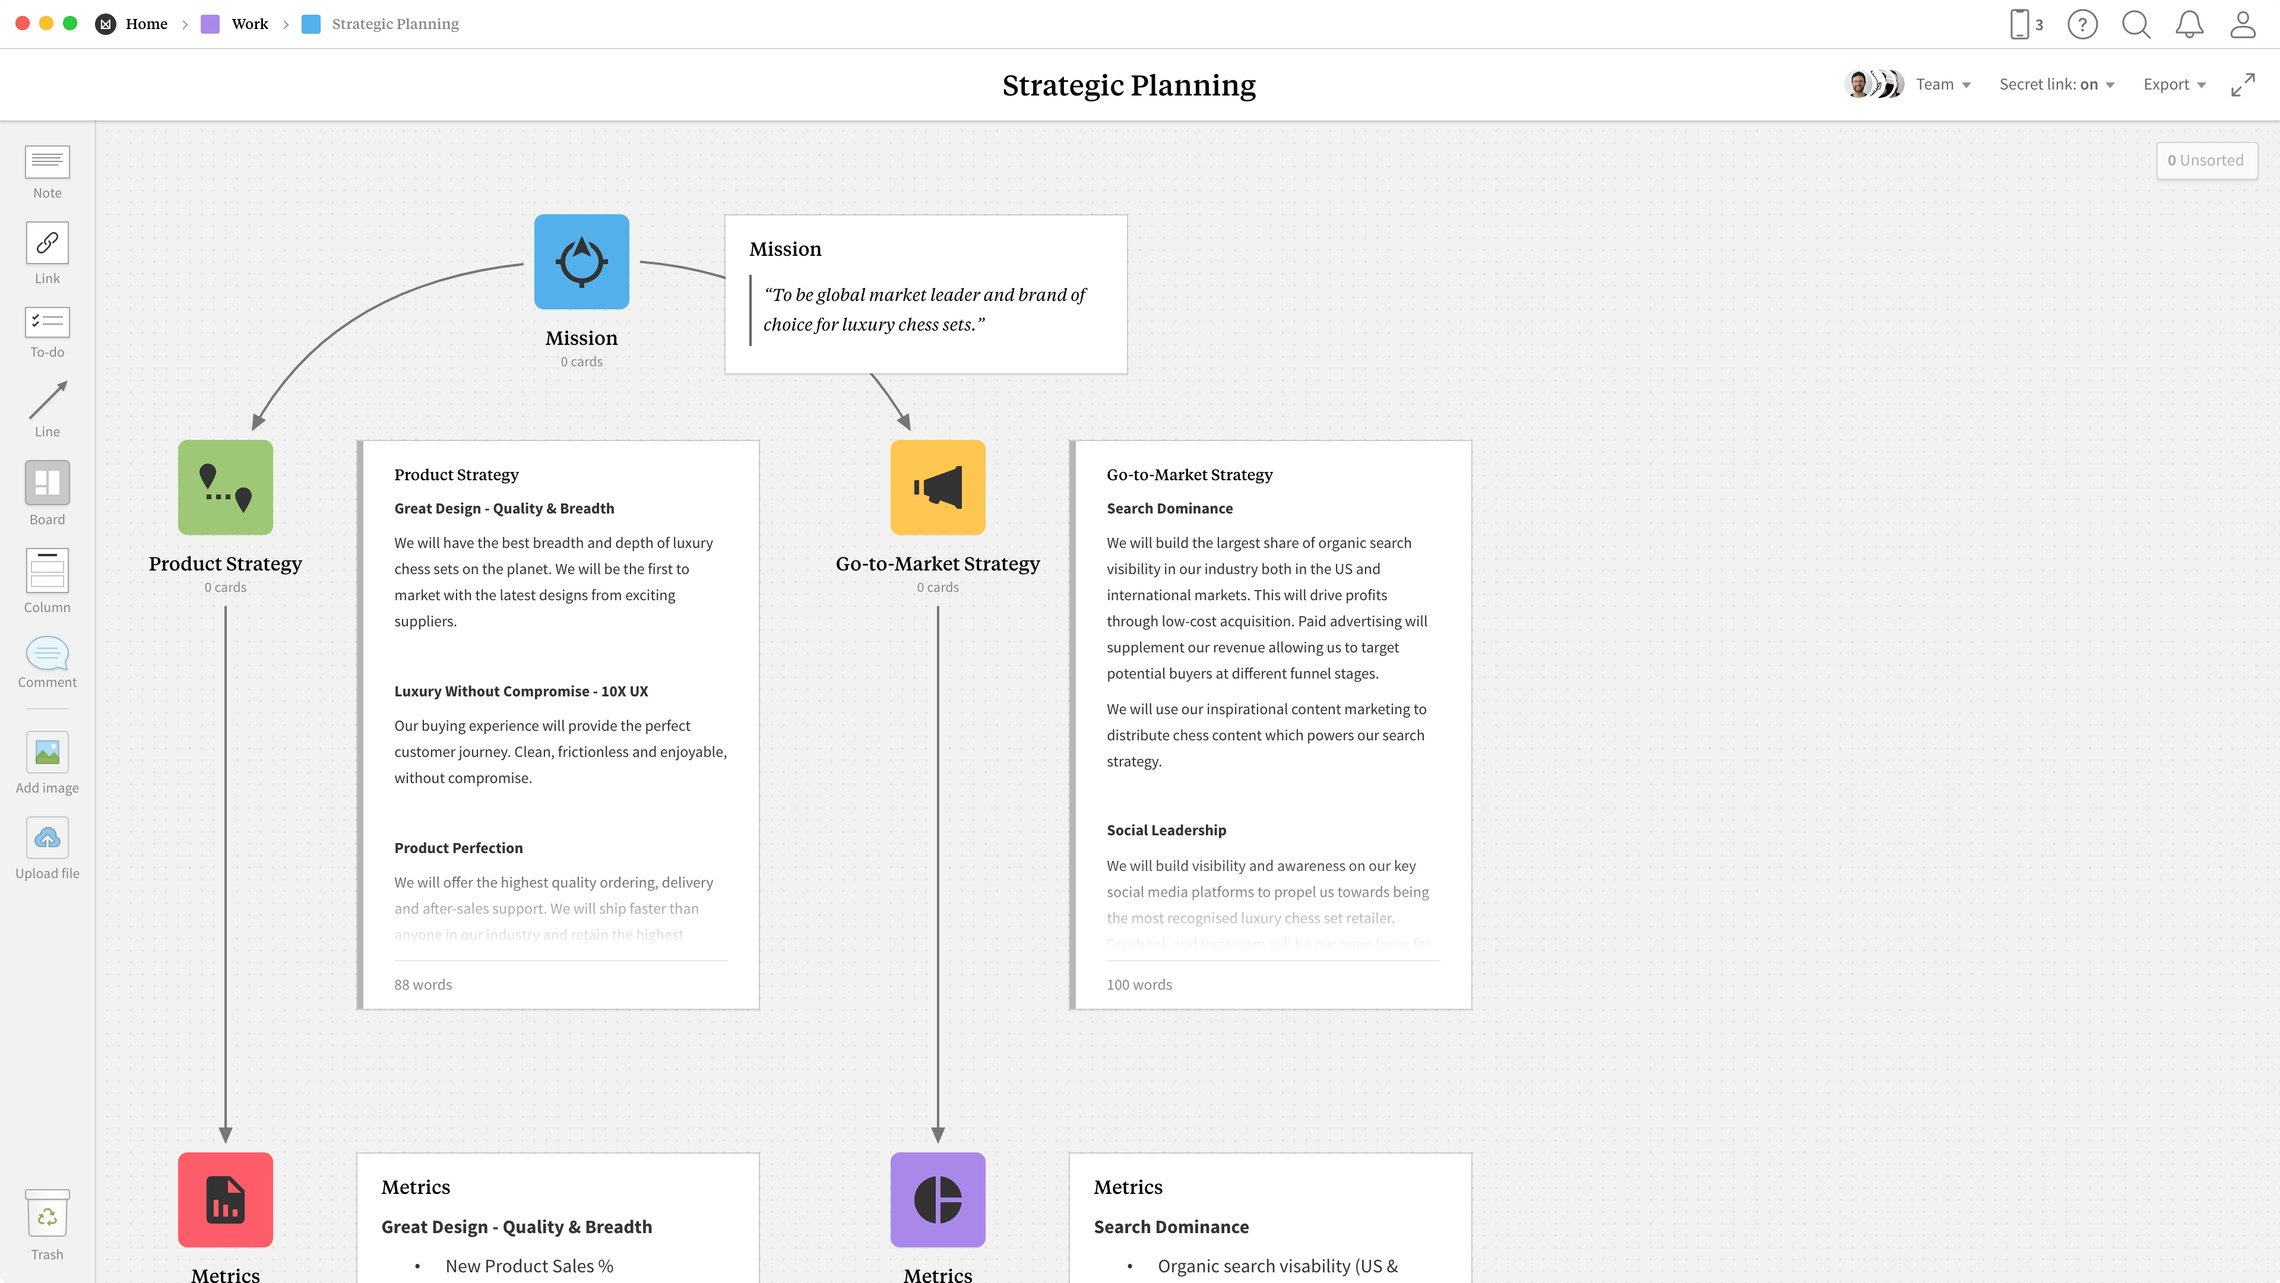 Strategic Planning Template, within the Milanote app